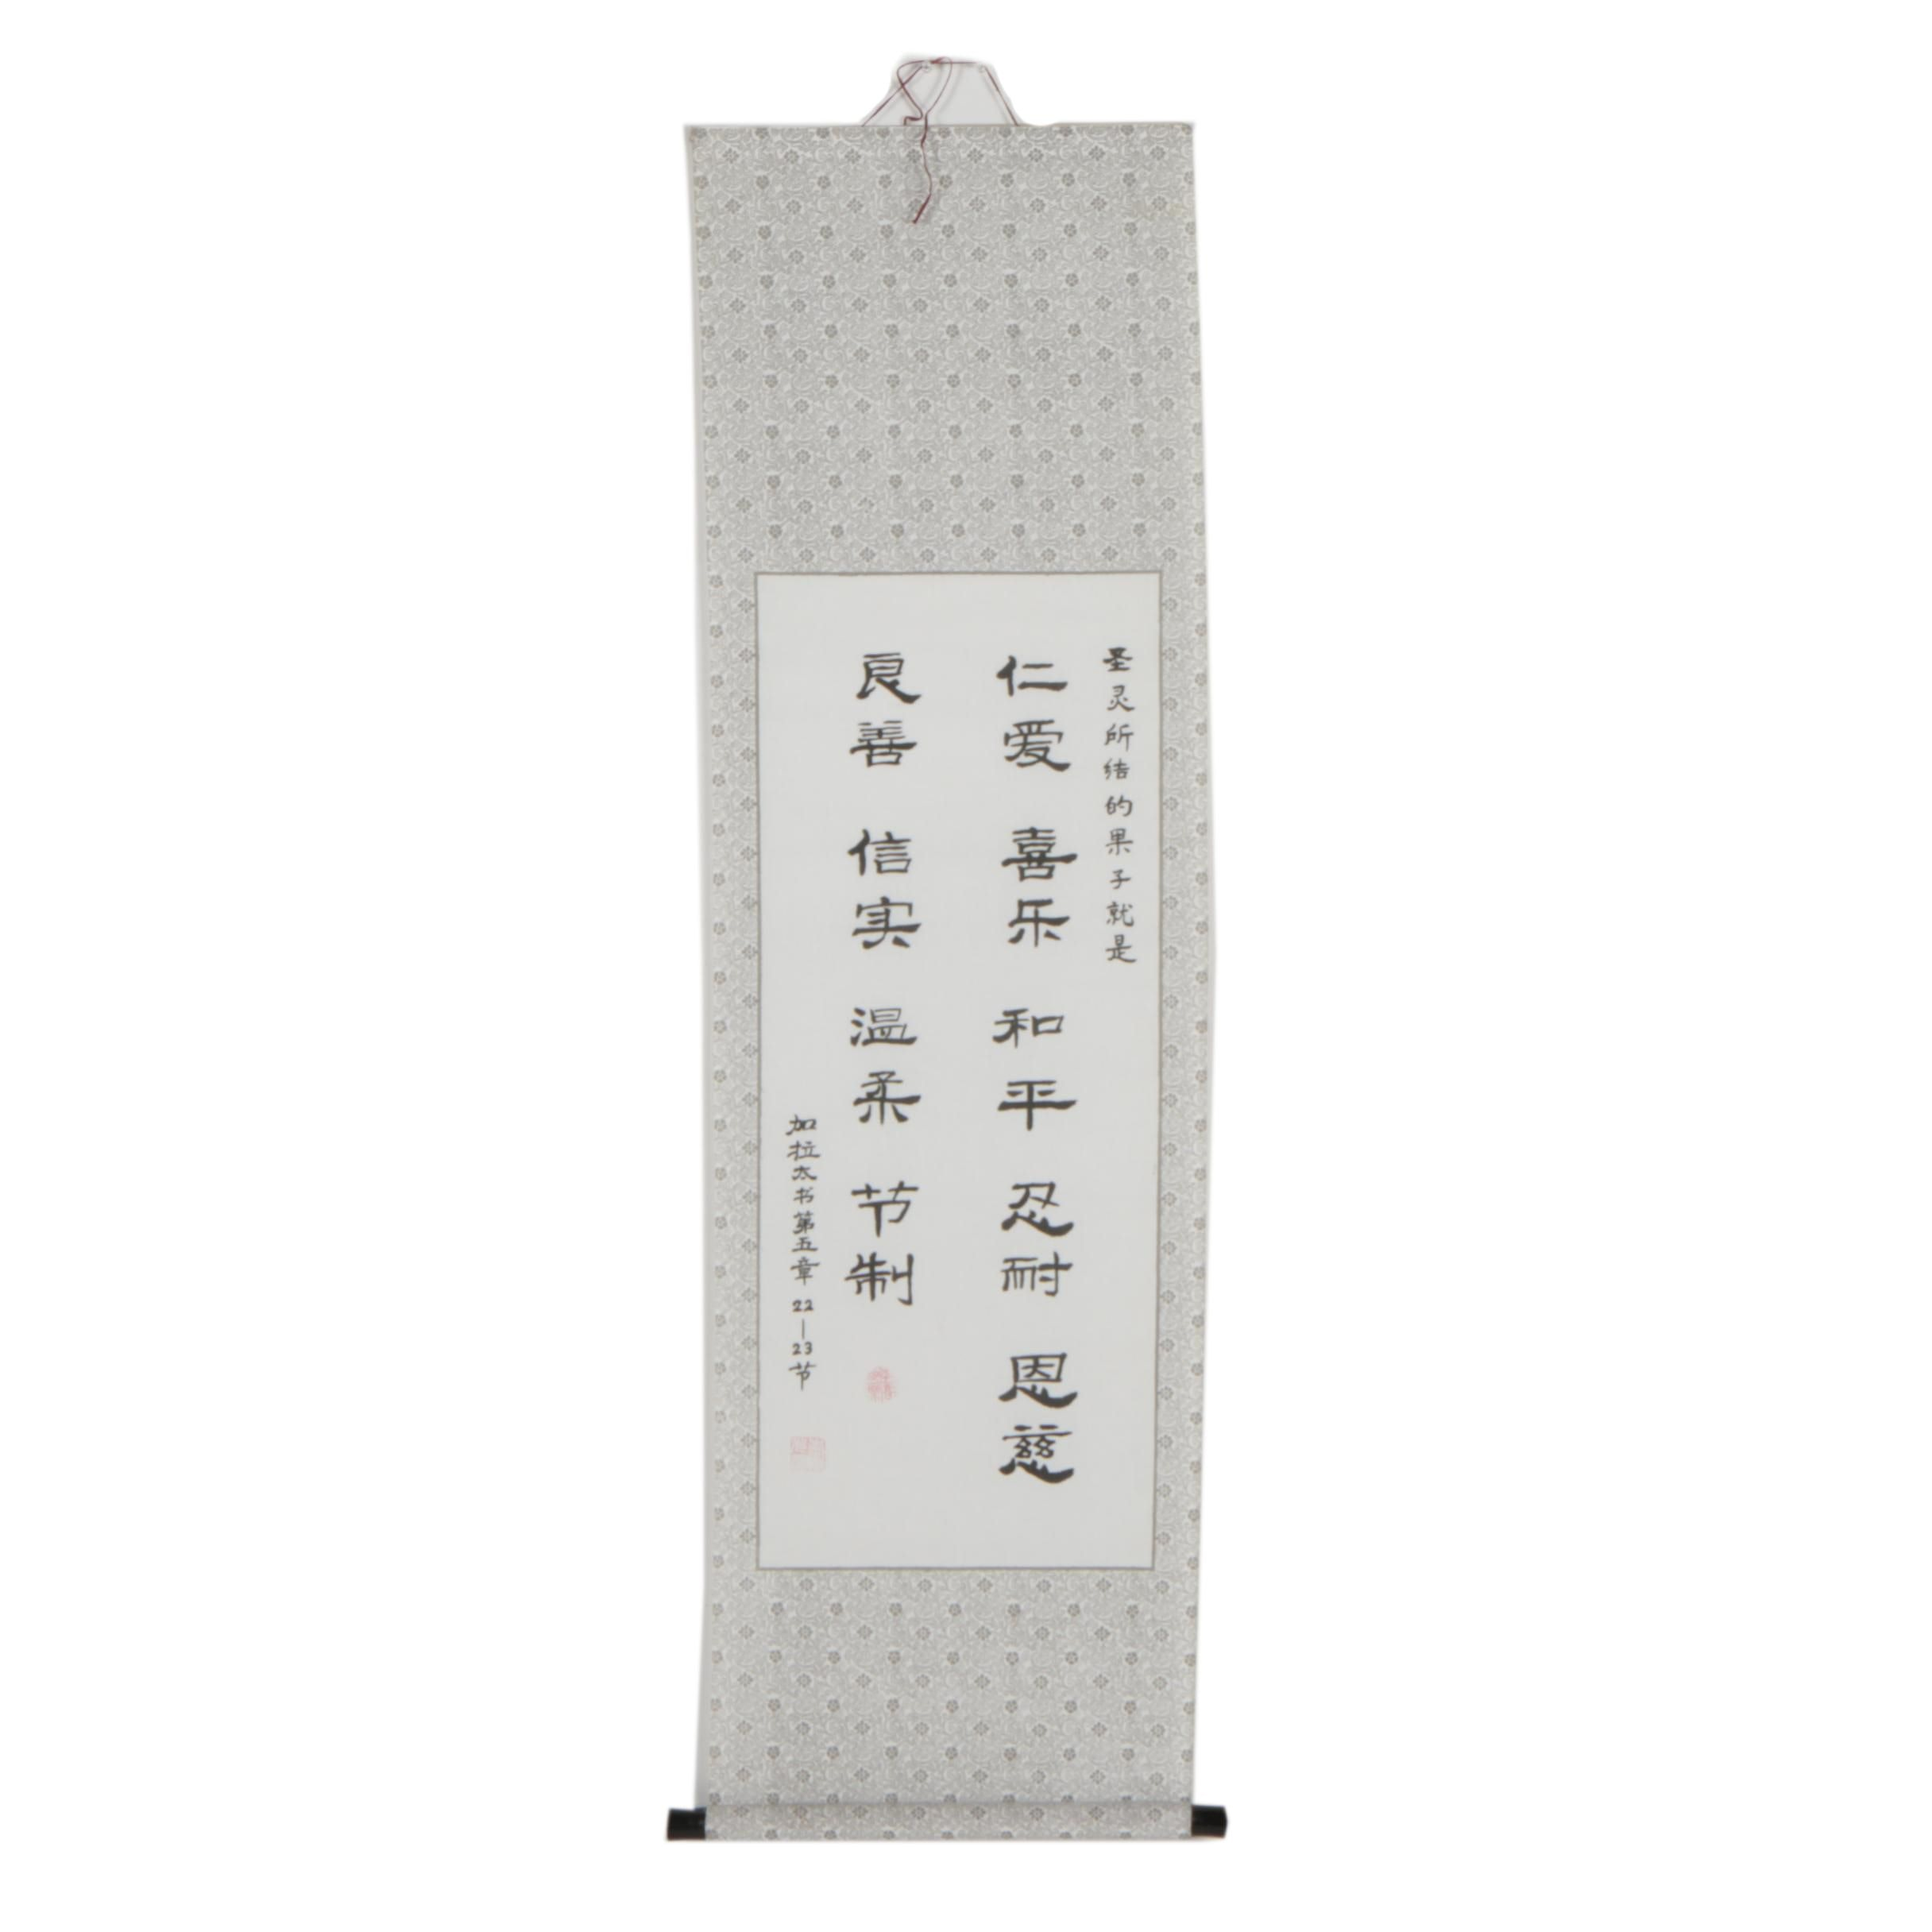 Chinese Printed Calligraphy Hanging Scroll